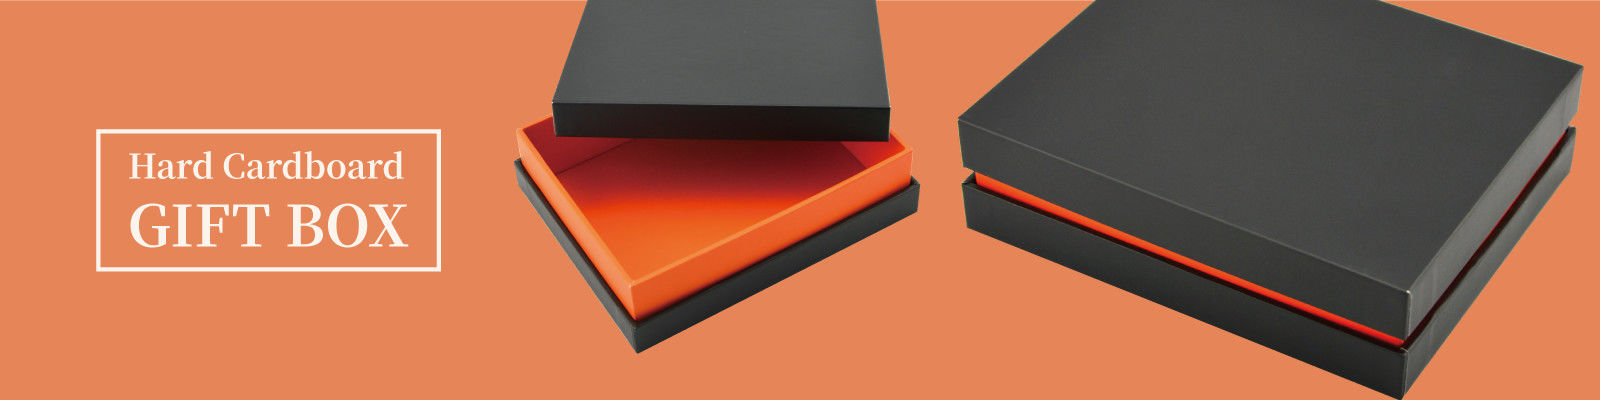 China best Hard Cardboard Gift Boxes on sales